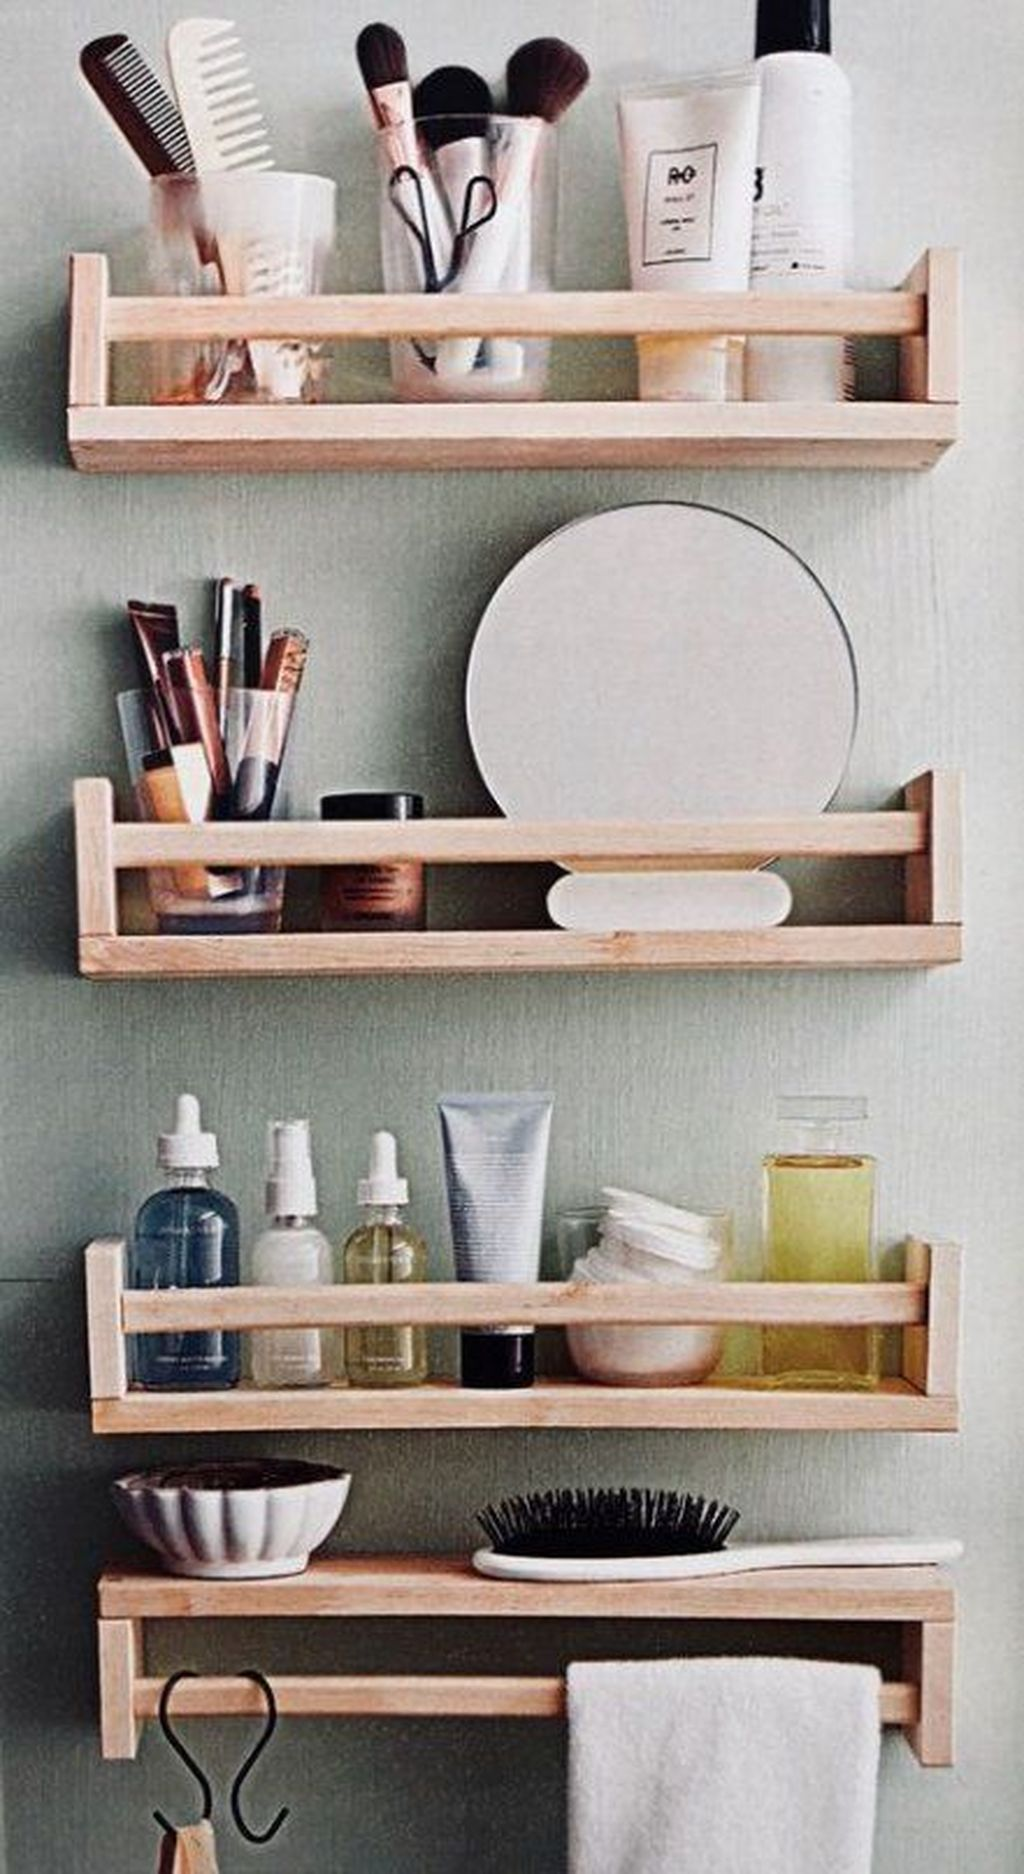 Stunning Bathroom Storage Design Ideas 27